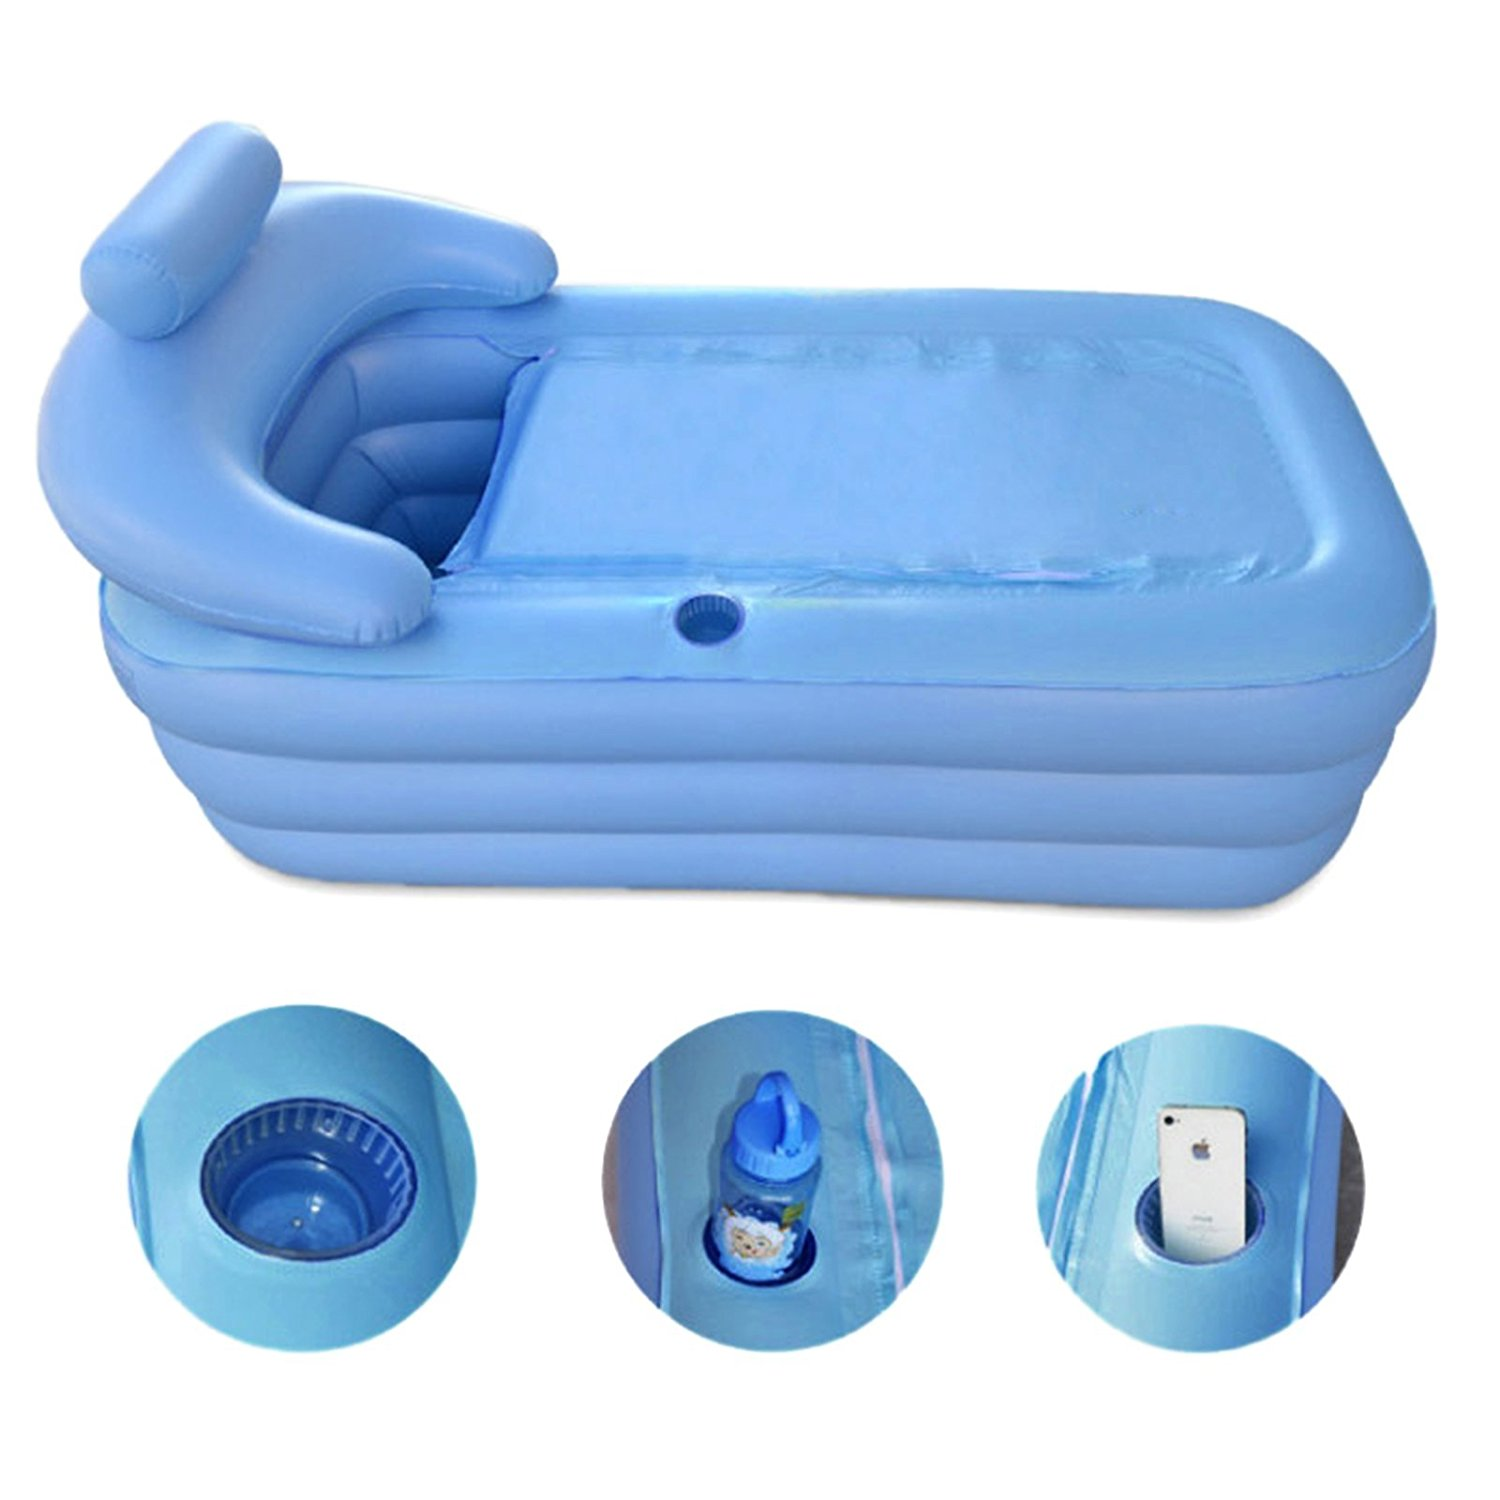 Inflatable Bath Tub PVC Portable Adult Bathtub Bathroom SPA with Air ...